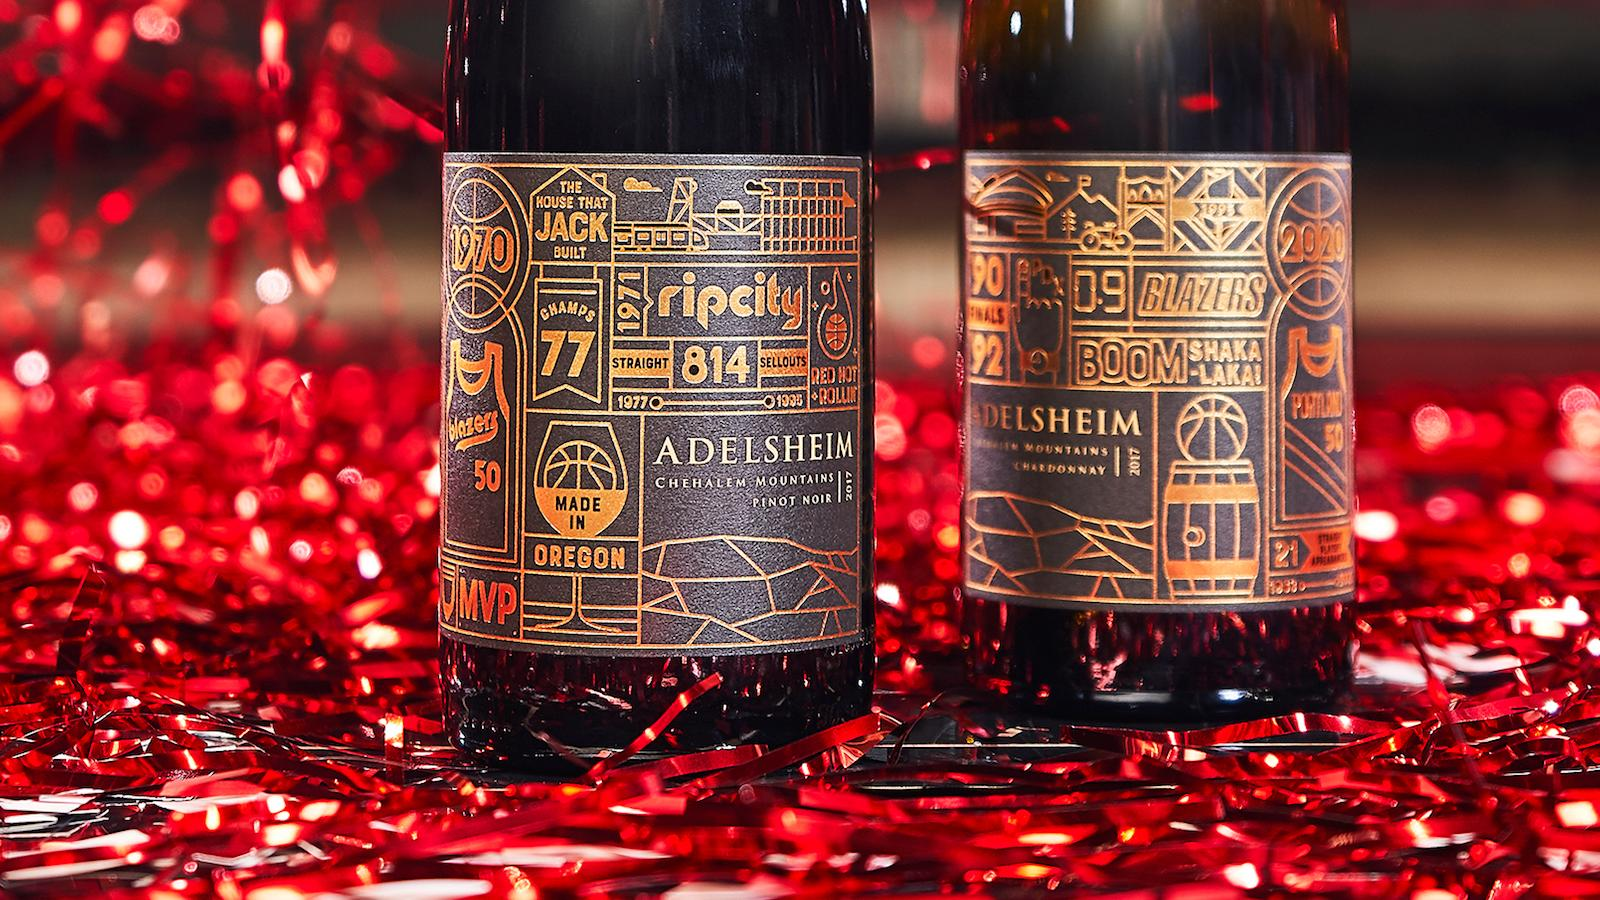 Adelsheim Rip City bottles